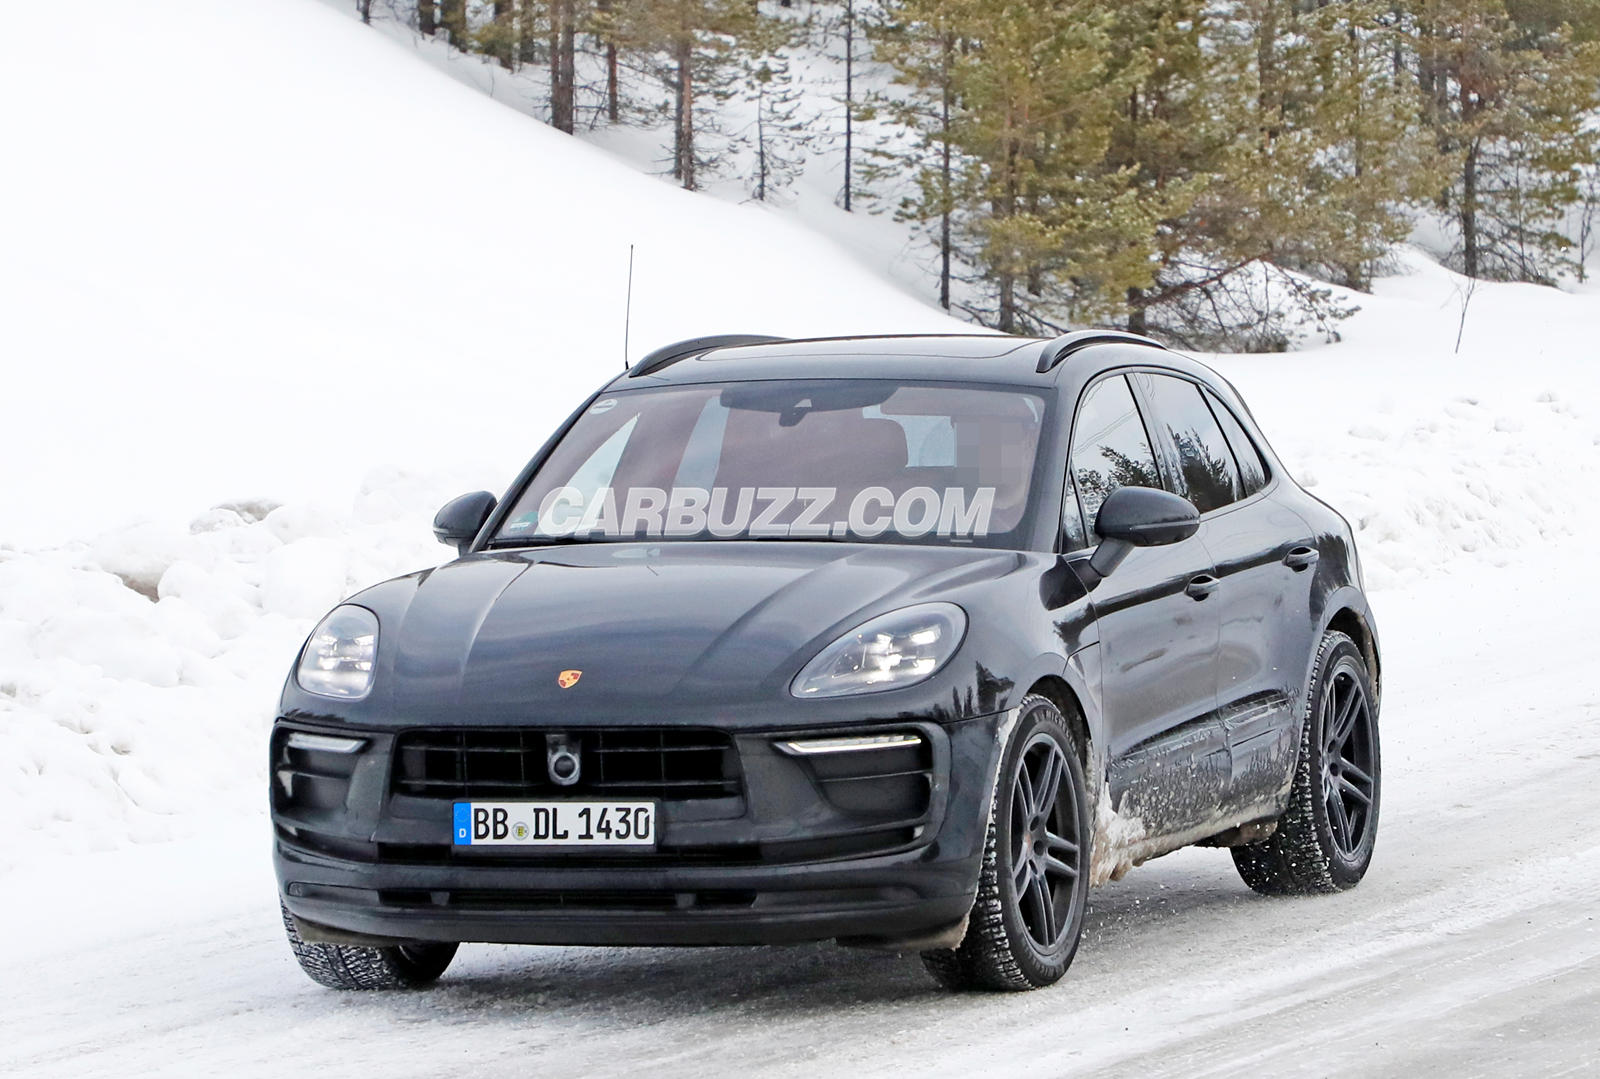 First Look At The All-Electric Porsche Macan